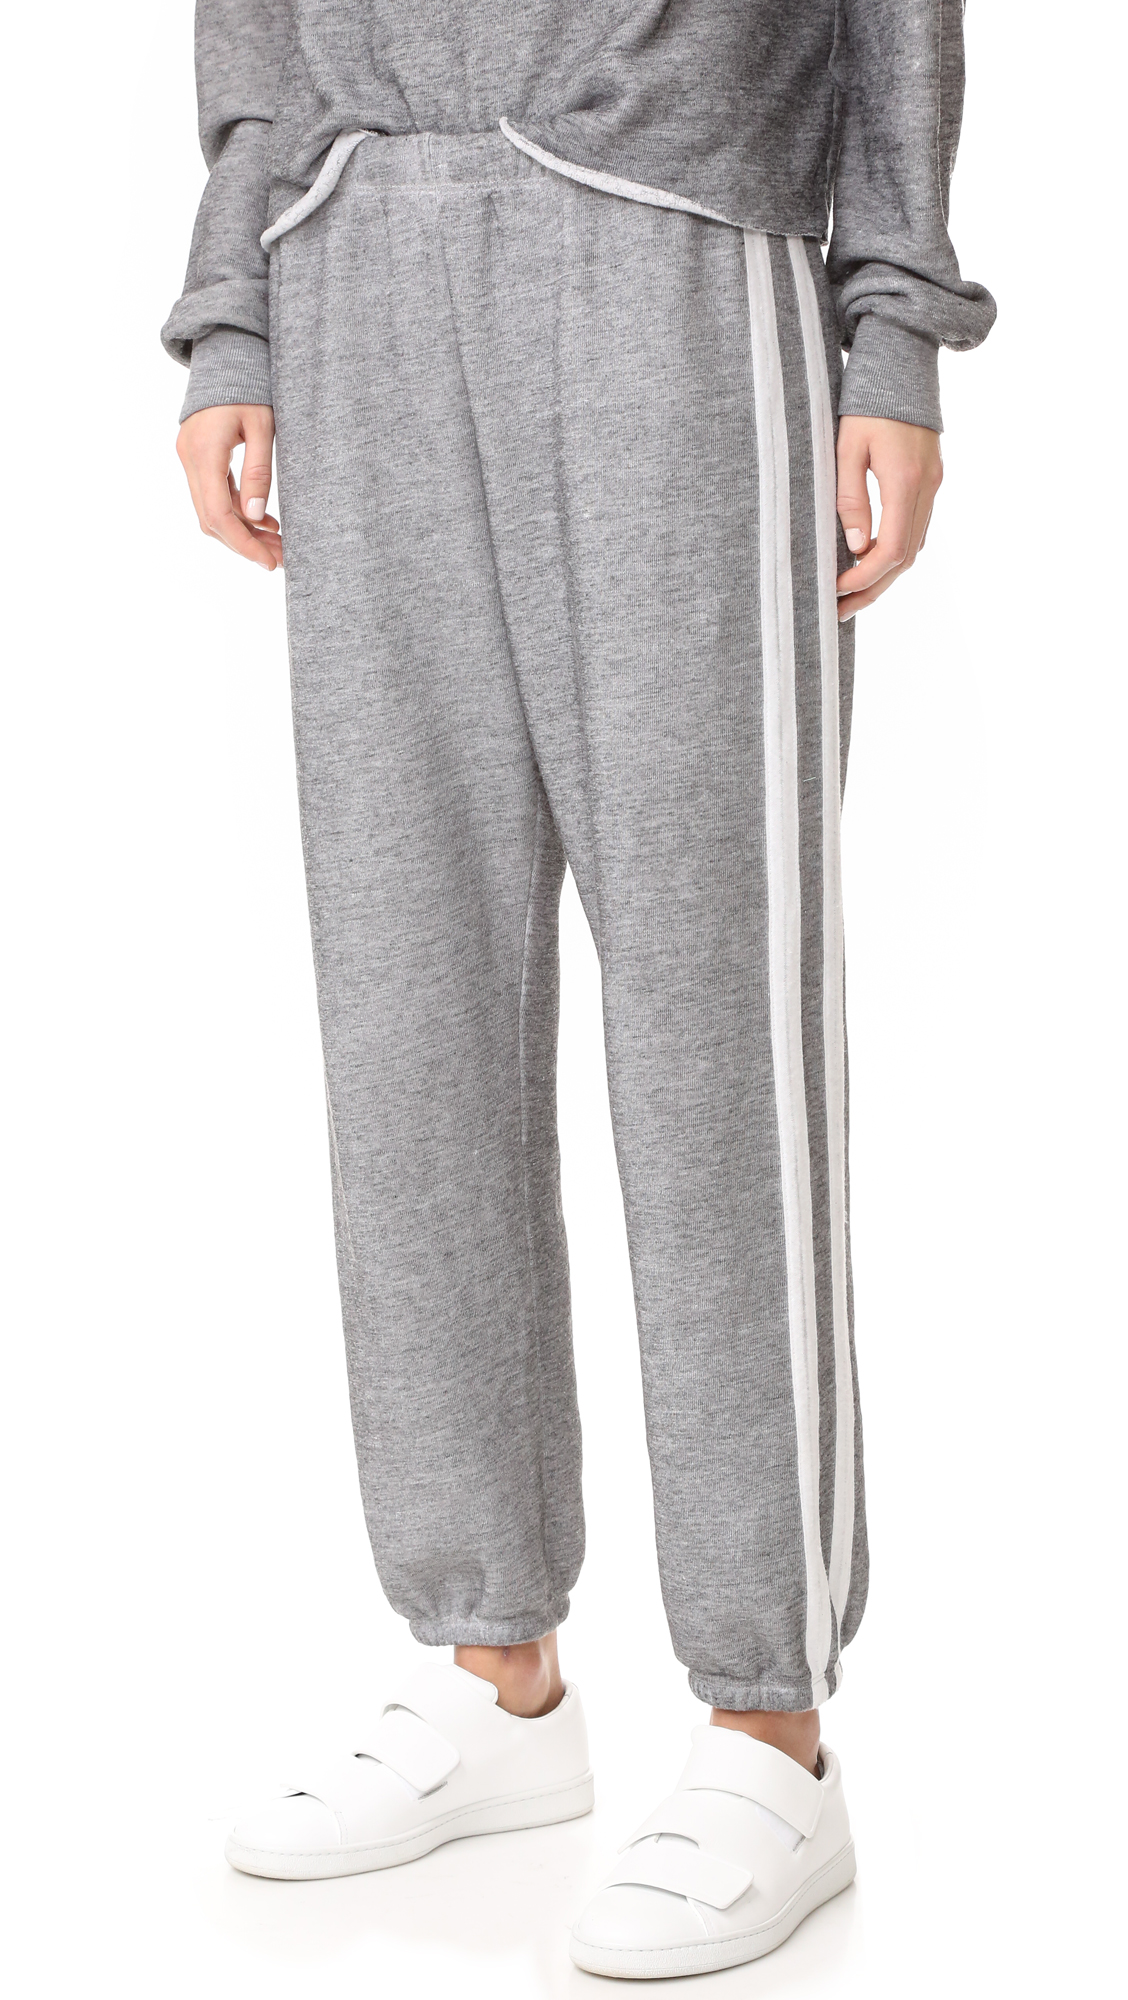 Contrast stripes accent these slouchy Wildfox sweatpants. Gathered elastic cinches the waist and cuffs. Fabric: Fleece. 50% polyester/47% cotton/3% rayon. Wash cold. Made in the USA. Measurements Rise: 11in / 28cm Inseam: 29.25in / 74cm Measurements from size S.